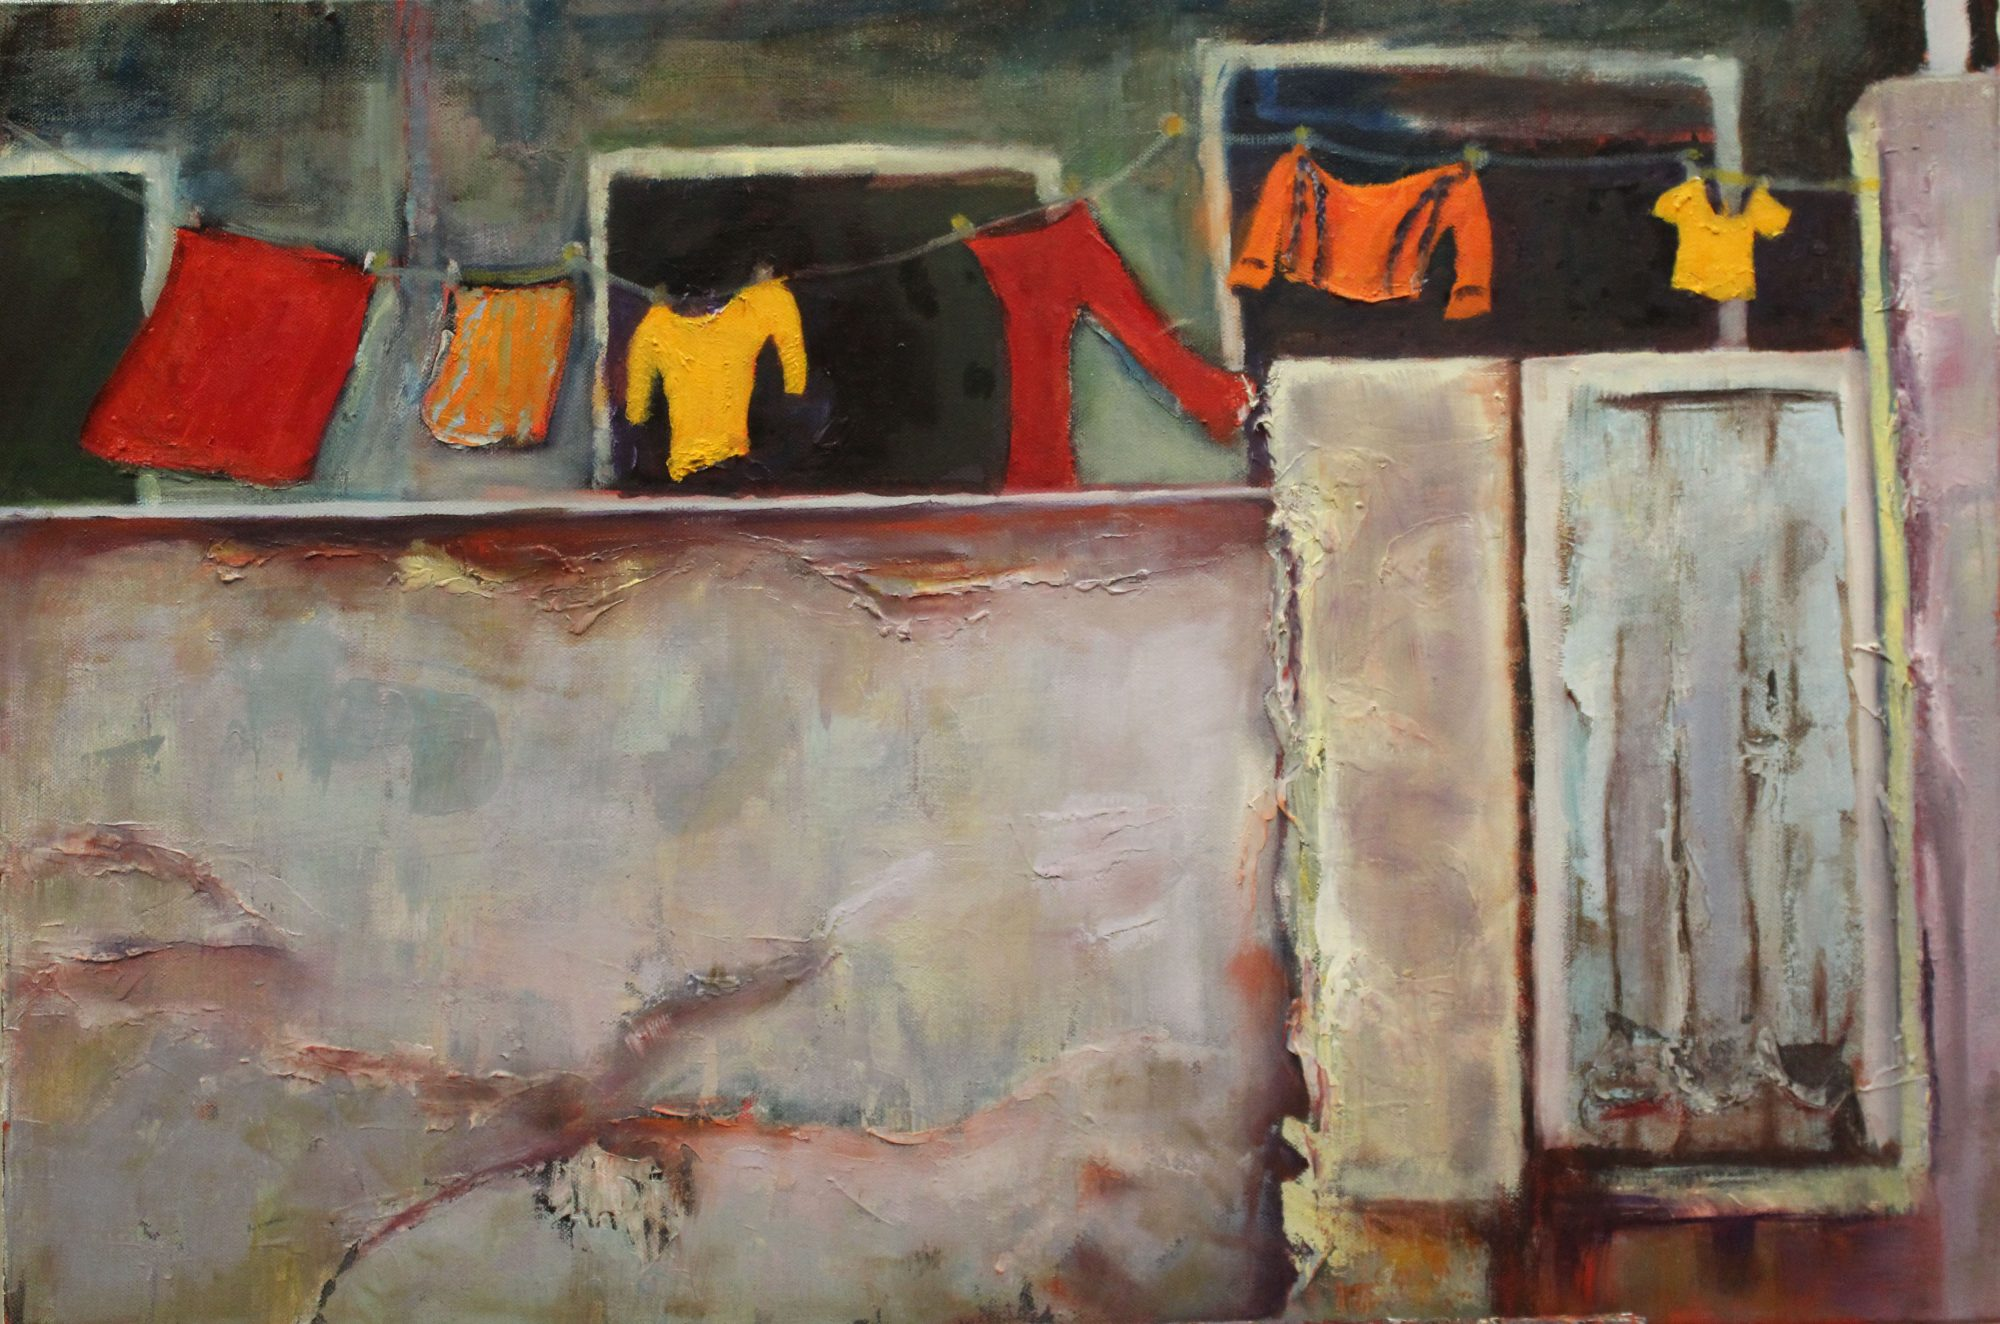 the-washing-line-75x50cm-oil-and-acrylic-on-canvas-300